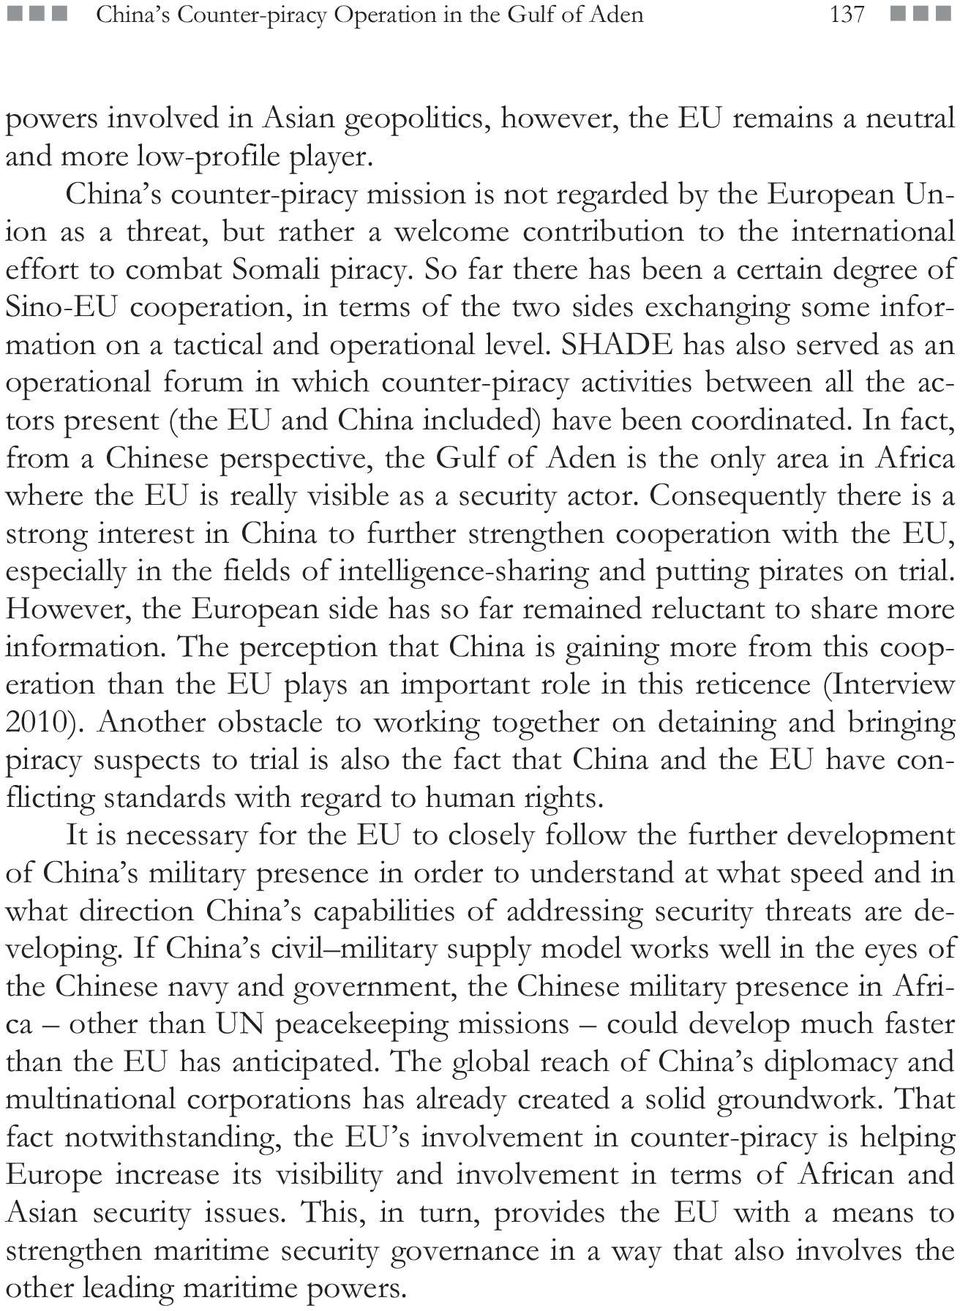 So far there has been a certain degree of Sino-EU cooperation, in terms of the two sides exchanging some information on a tactical and operational level.